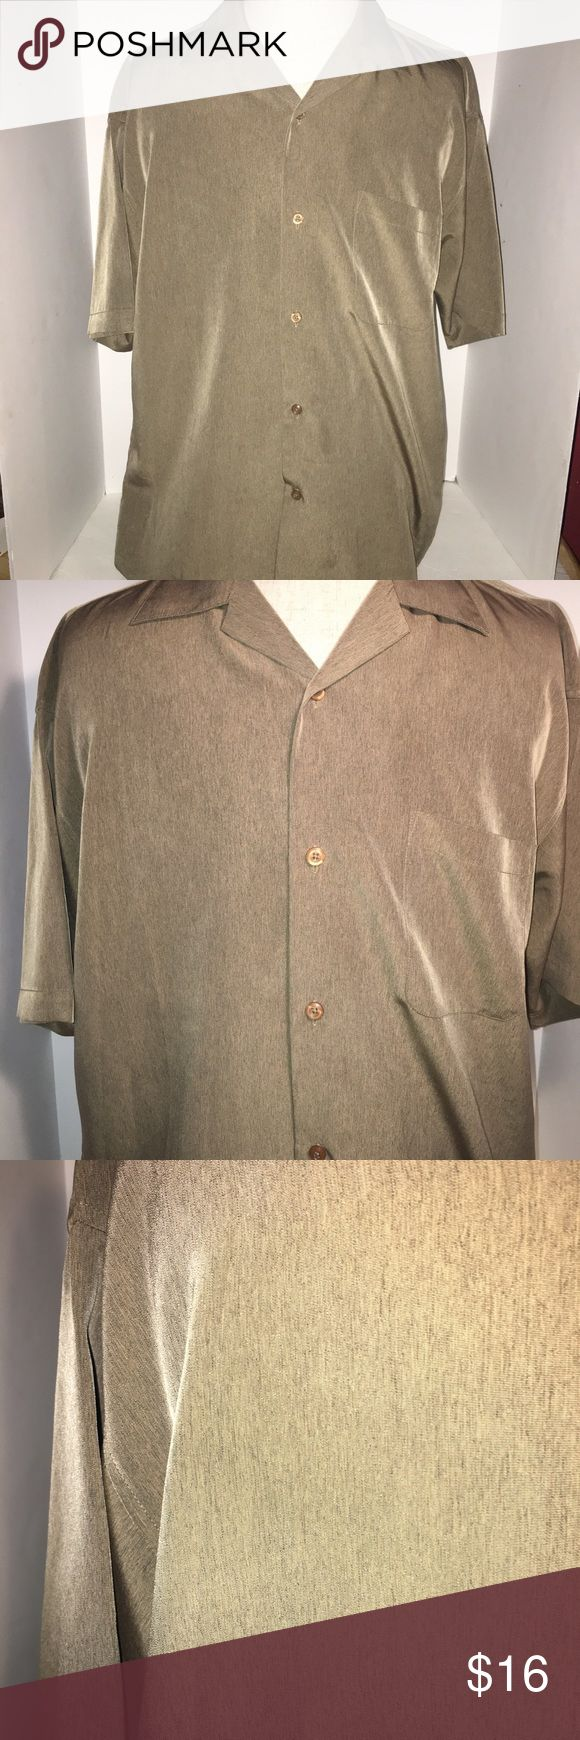 Men's short sleeve dress shirt Button down. One breast pocket. Silky soft. In excellent condition! Shirts Dress Shirts